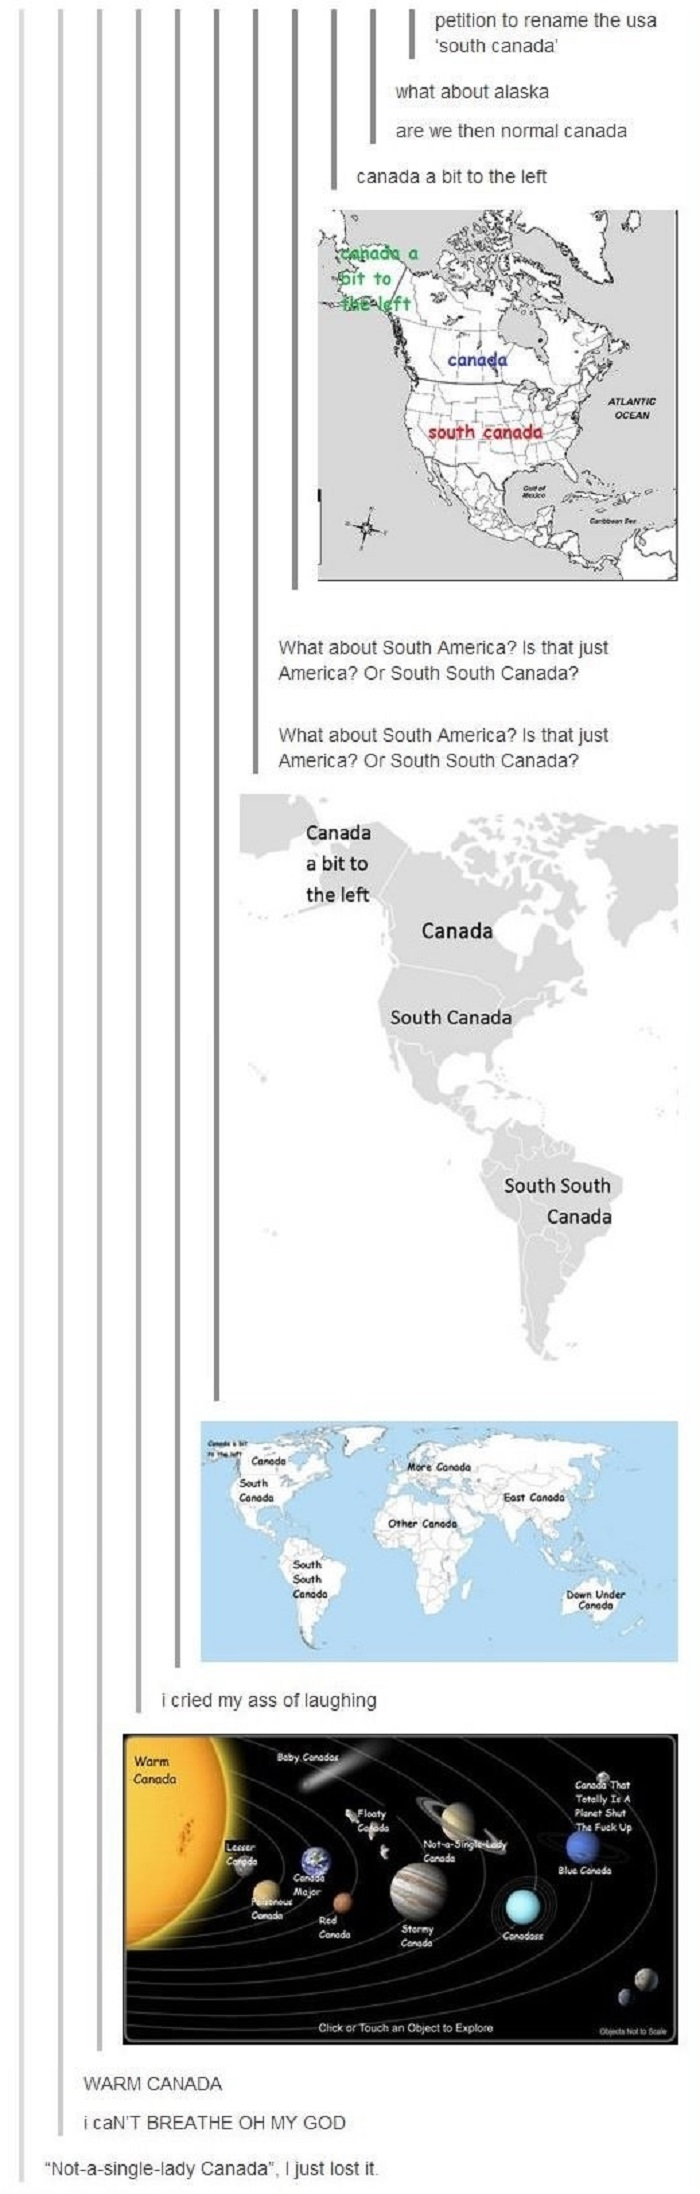 Canada is taking over